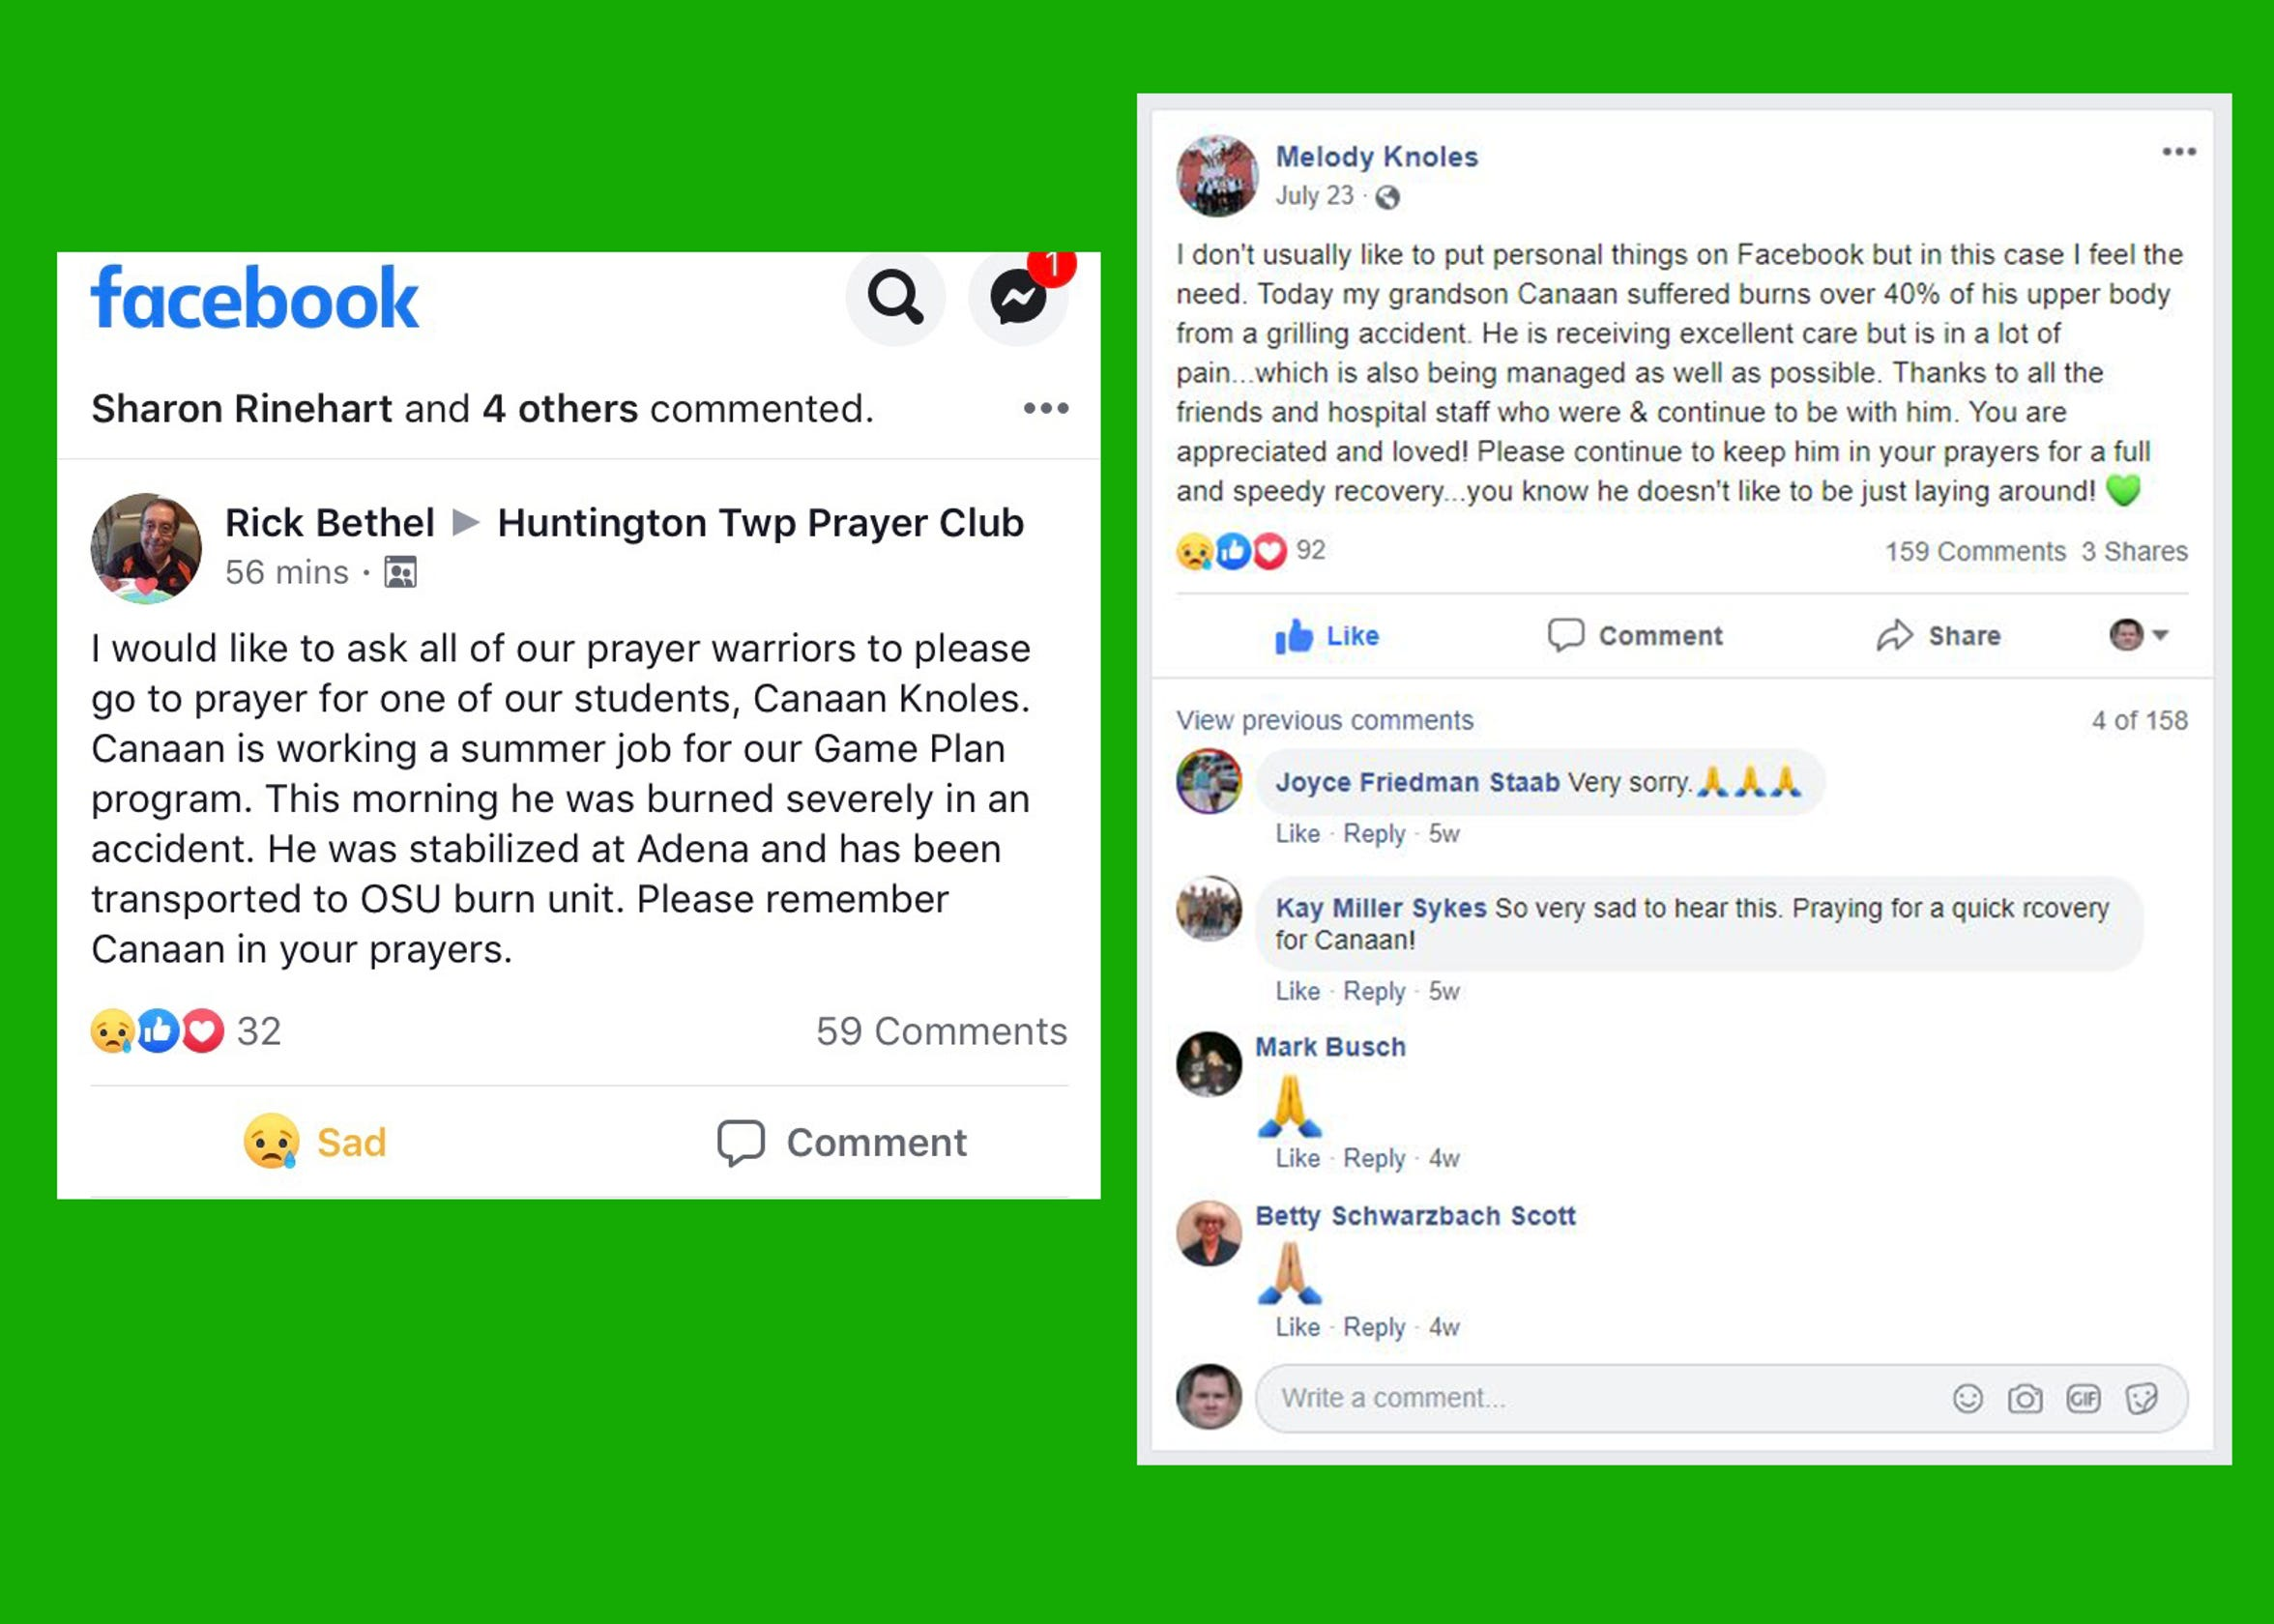 Facebook and other social media platforms were key factors in keeping others informed about Canaan's condition and the appreciation the family had with all the prayer requests.